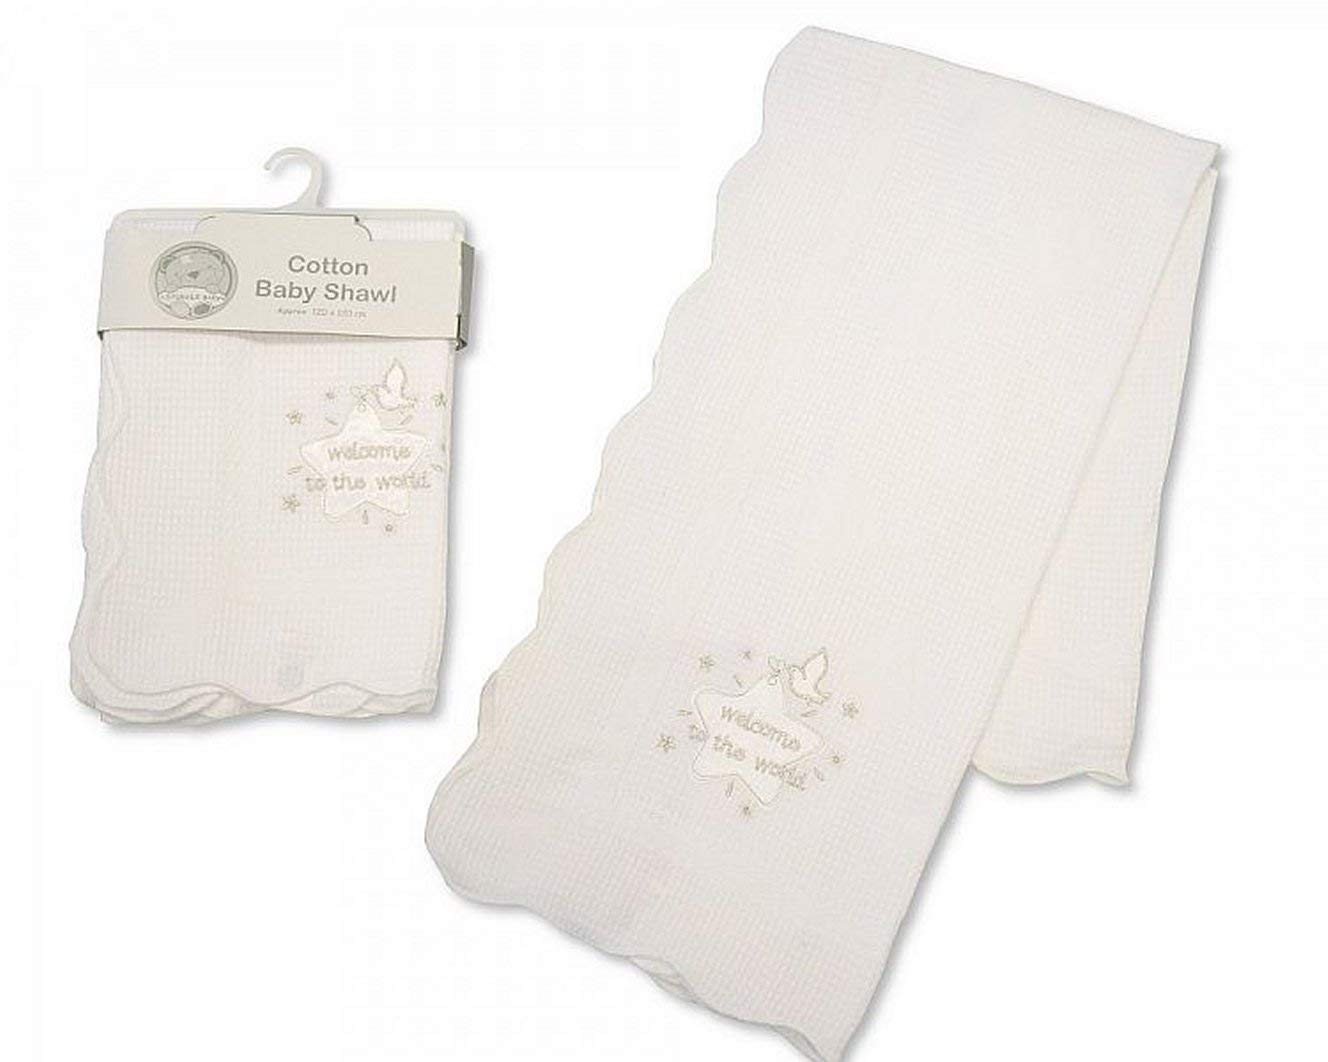 Baby Christening Shawl White/Silver With Embroidery and Applique - 100% Cotton Nursery Time